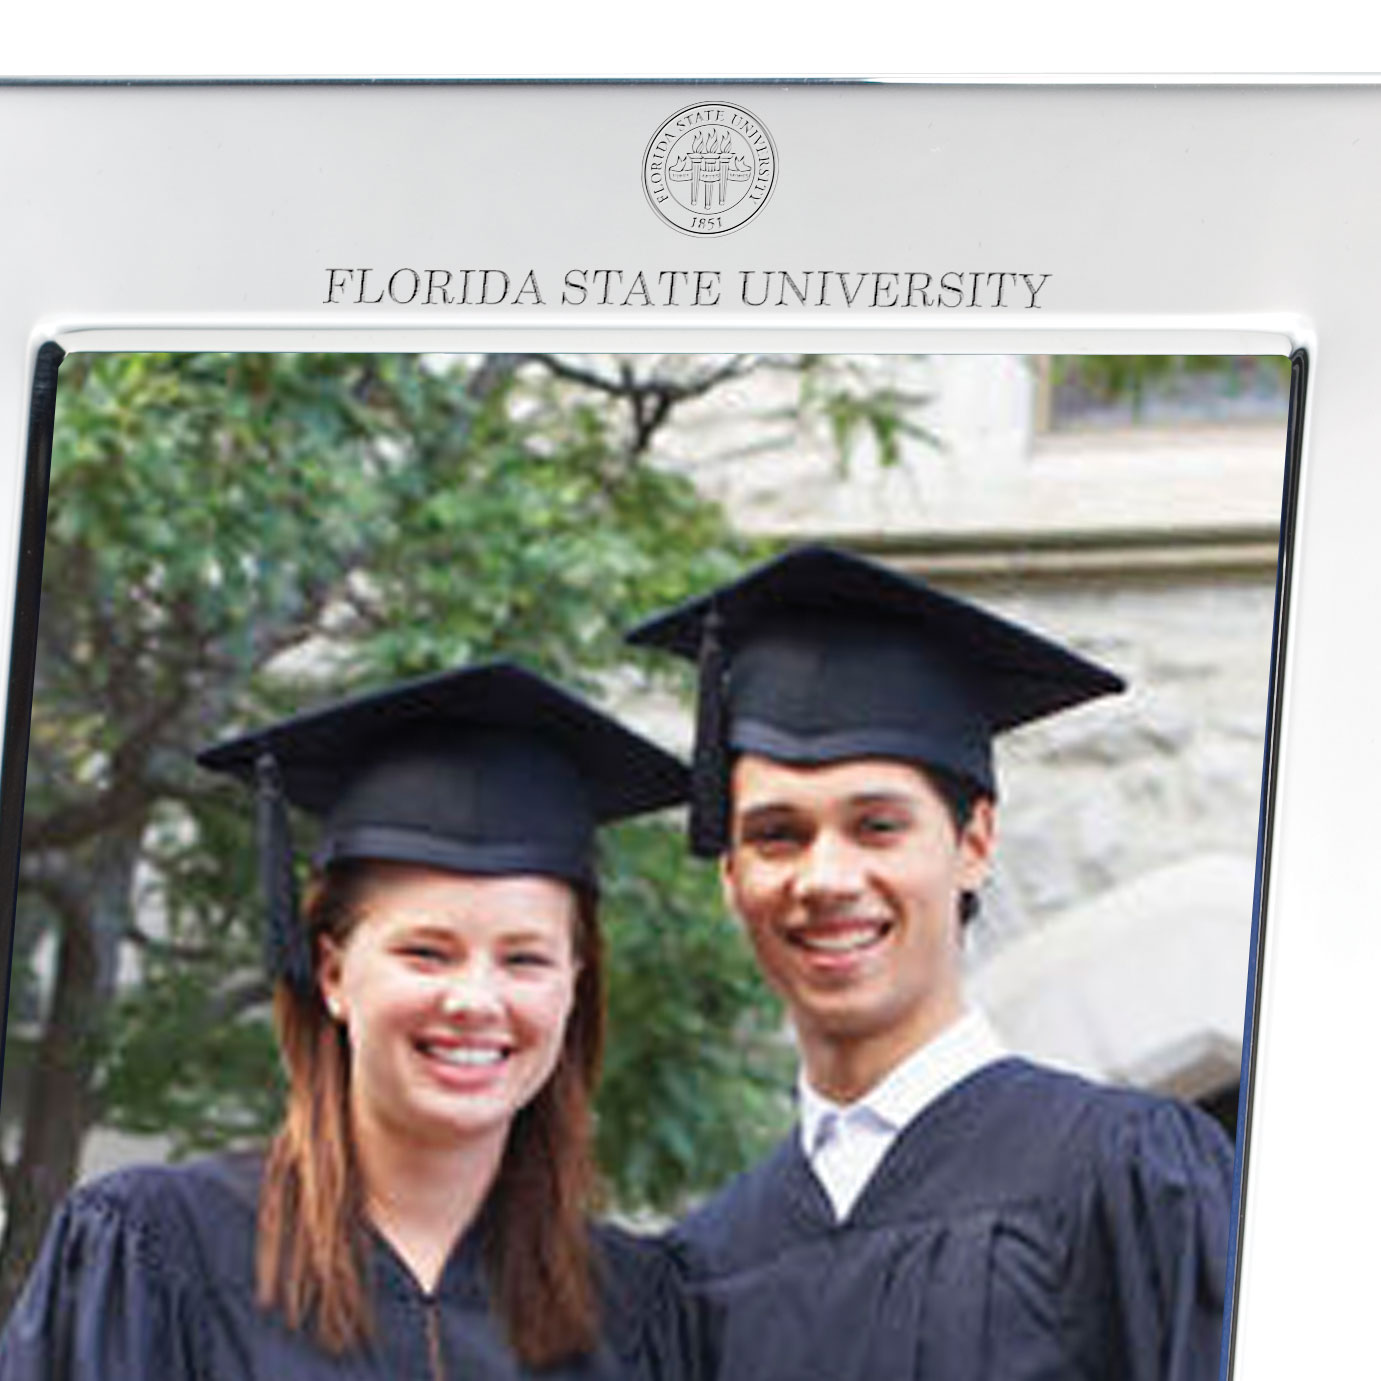 Florida State Polished Pewter 5x7 Picture Frame - Image 2